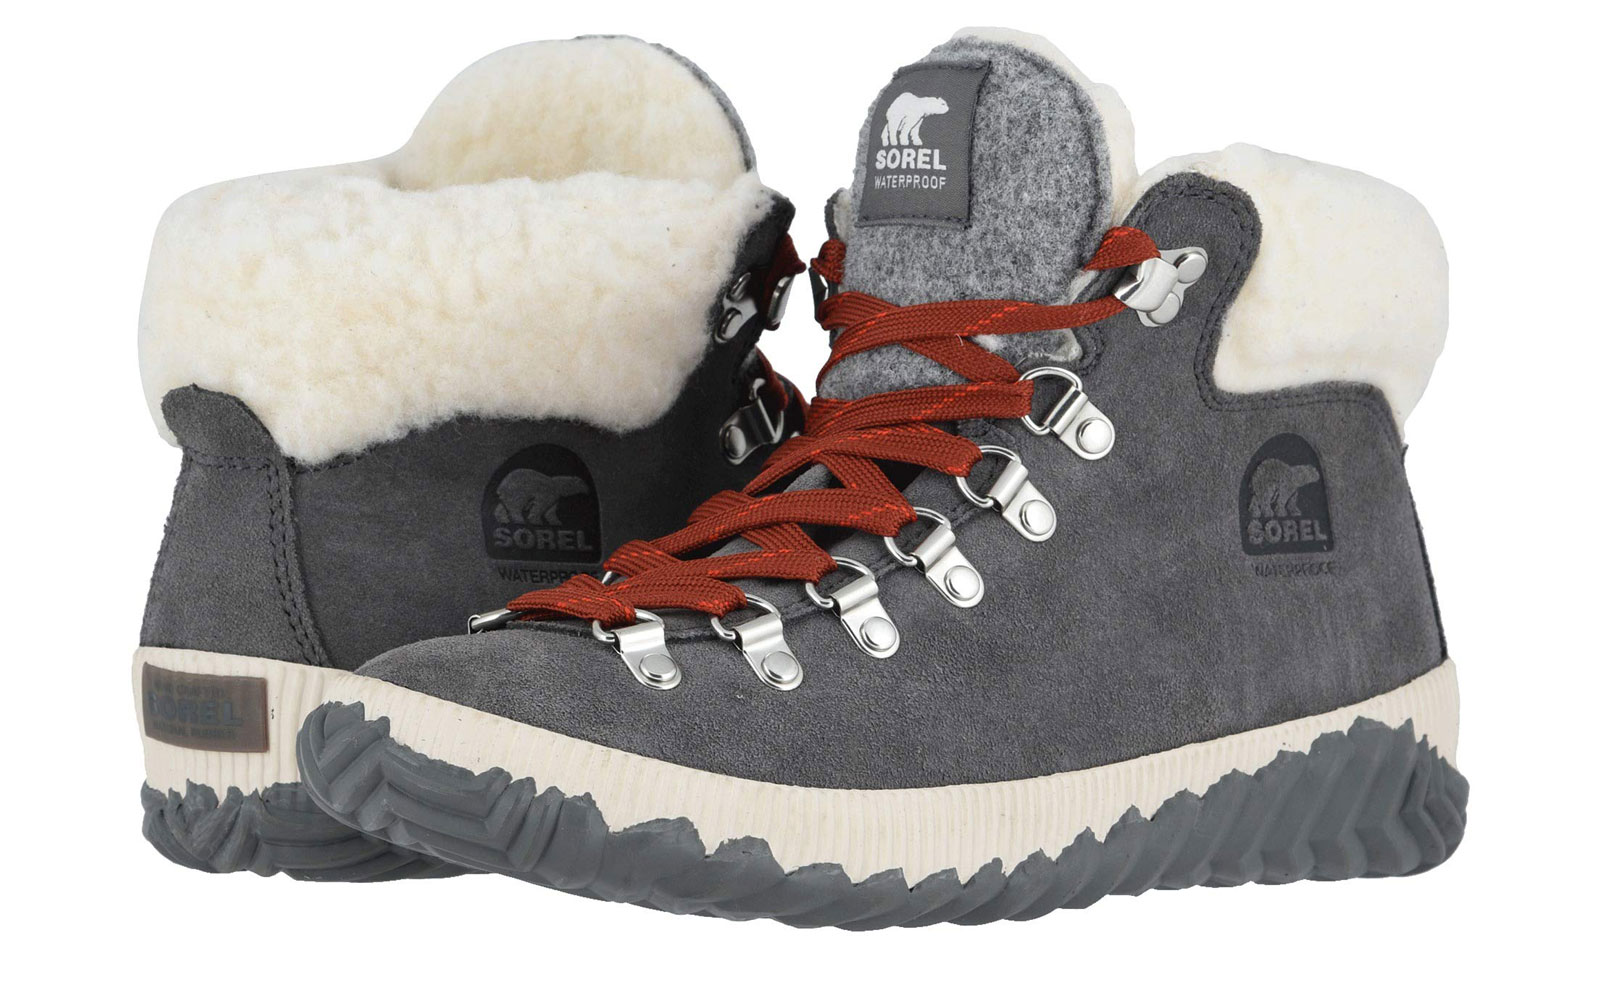 Women's Grey Lace Up Snow Boots with Sherpa